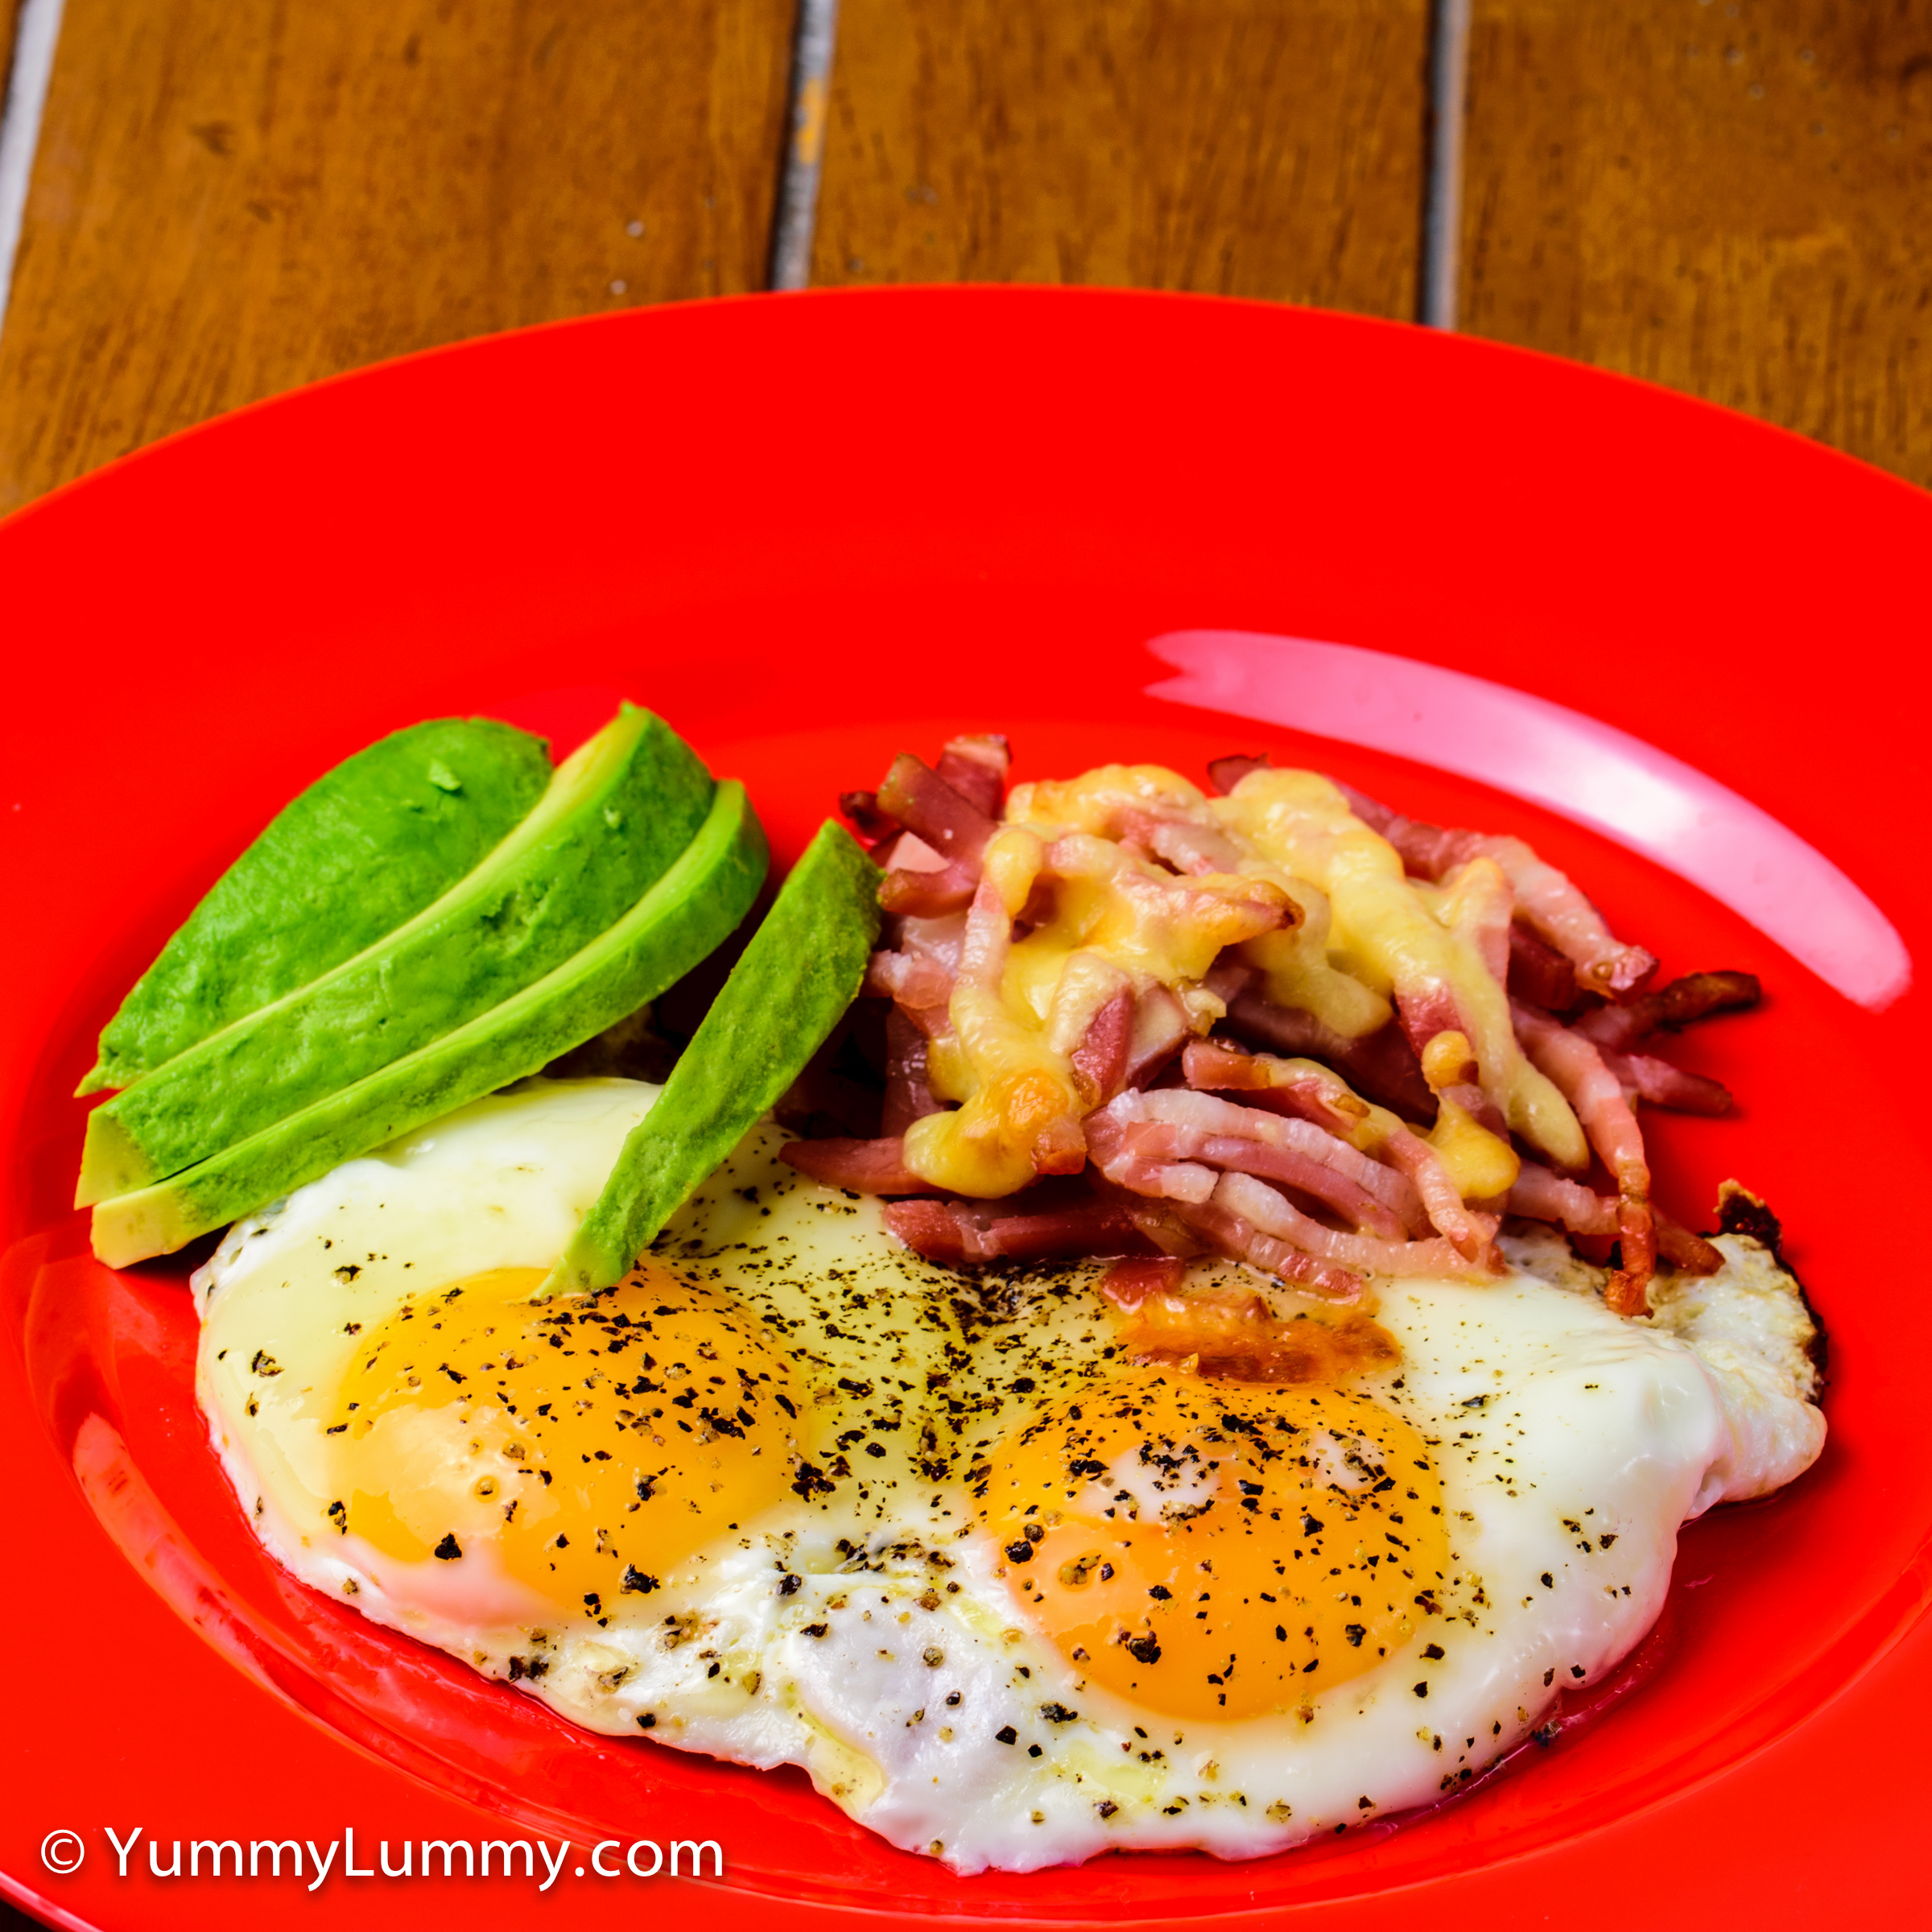 Happy hump day breakfast. Bacon and eggs with smoked cheddar cheese and avocado.